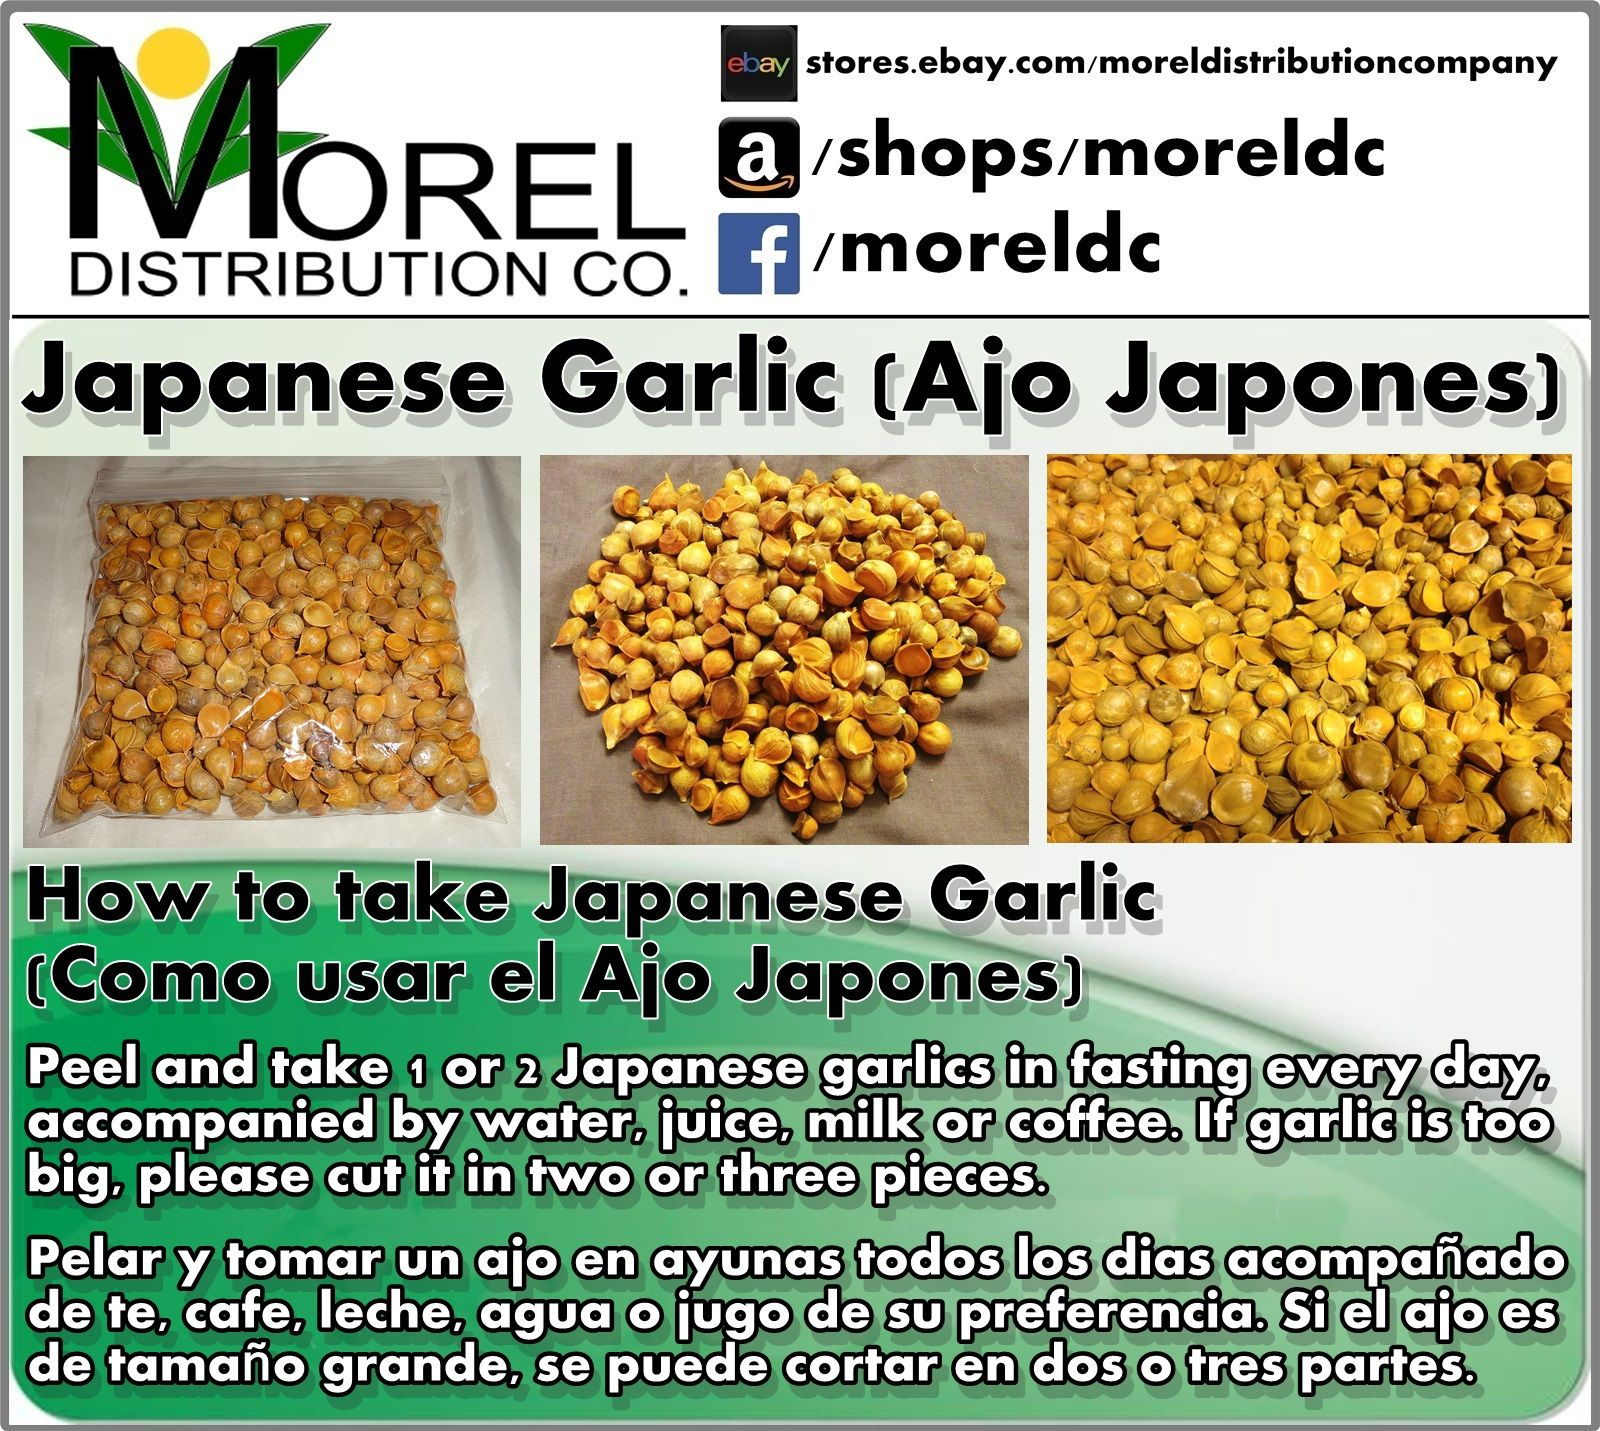 directions on how to take japanese garlic. #japanesegarlic